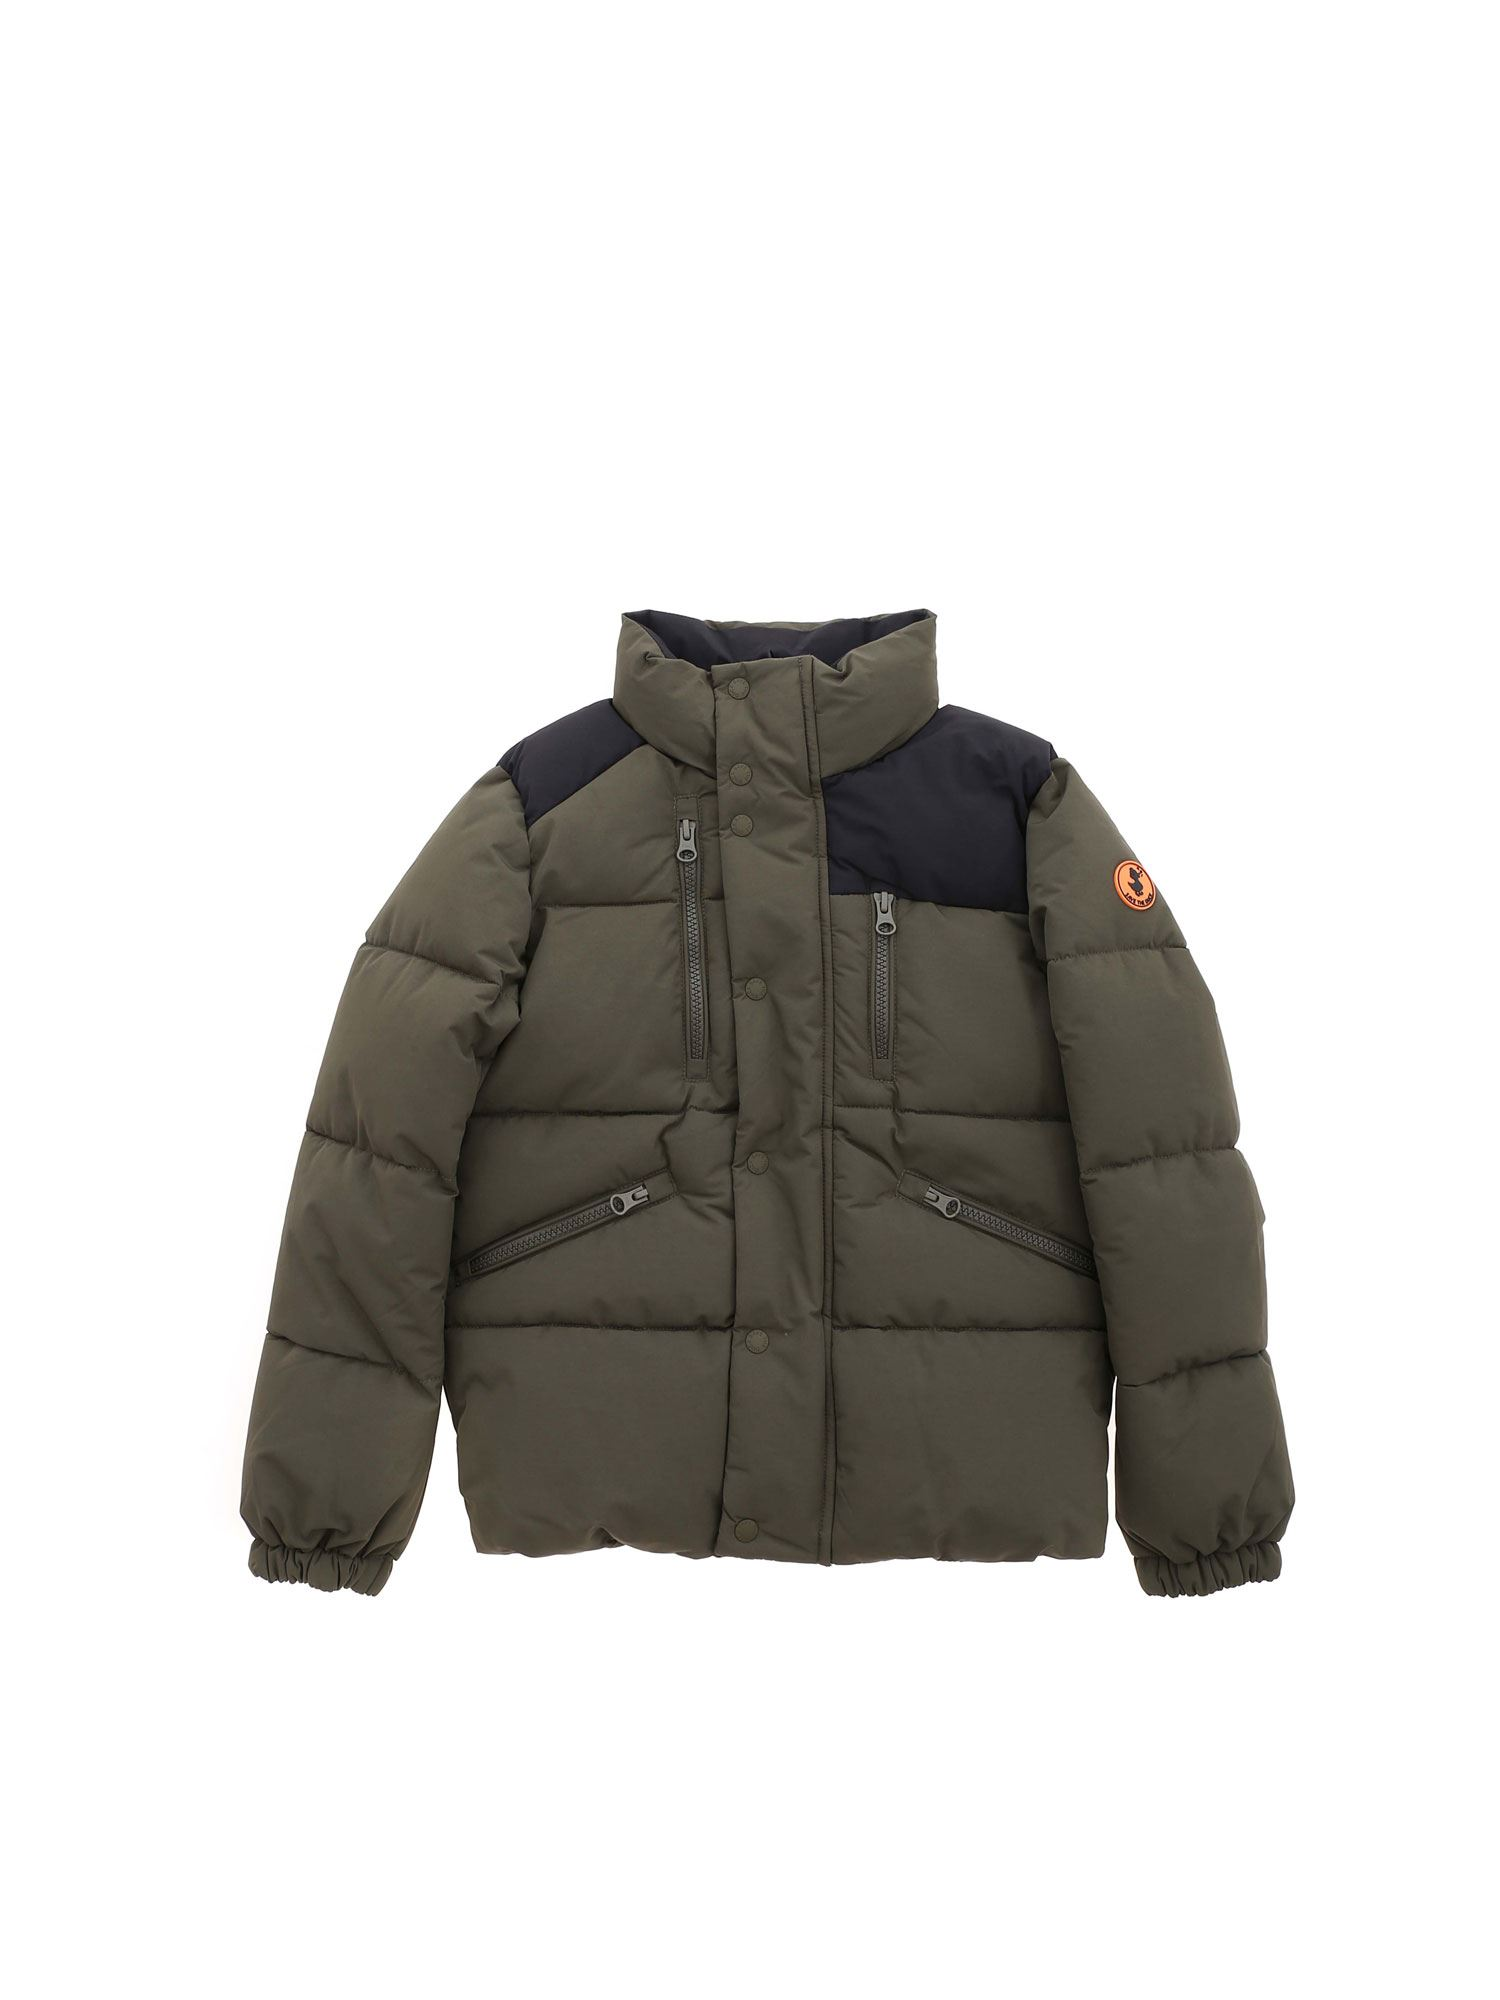 Save The Duck Downs ICONS COLLECTION QUILTED DOWN JACKET IN GREEN